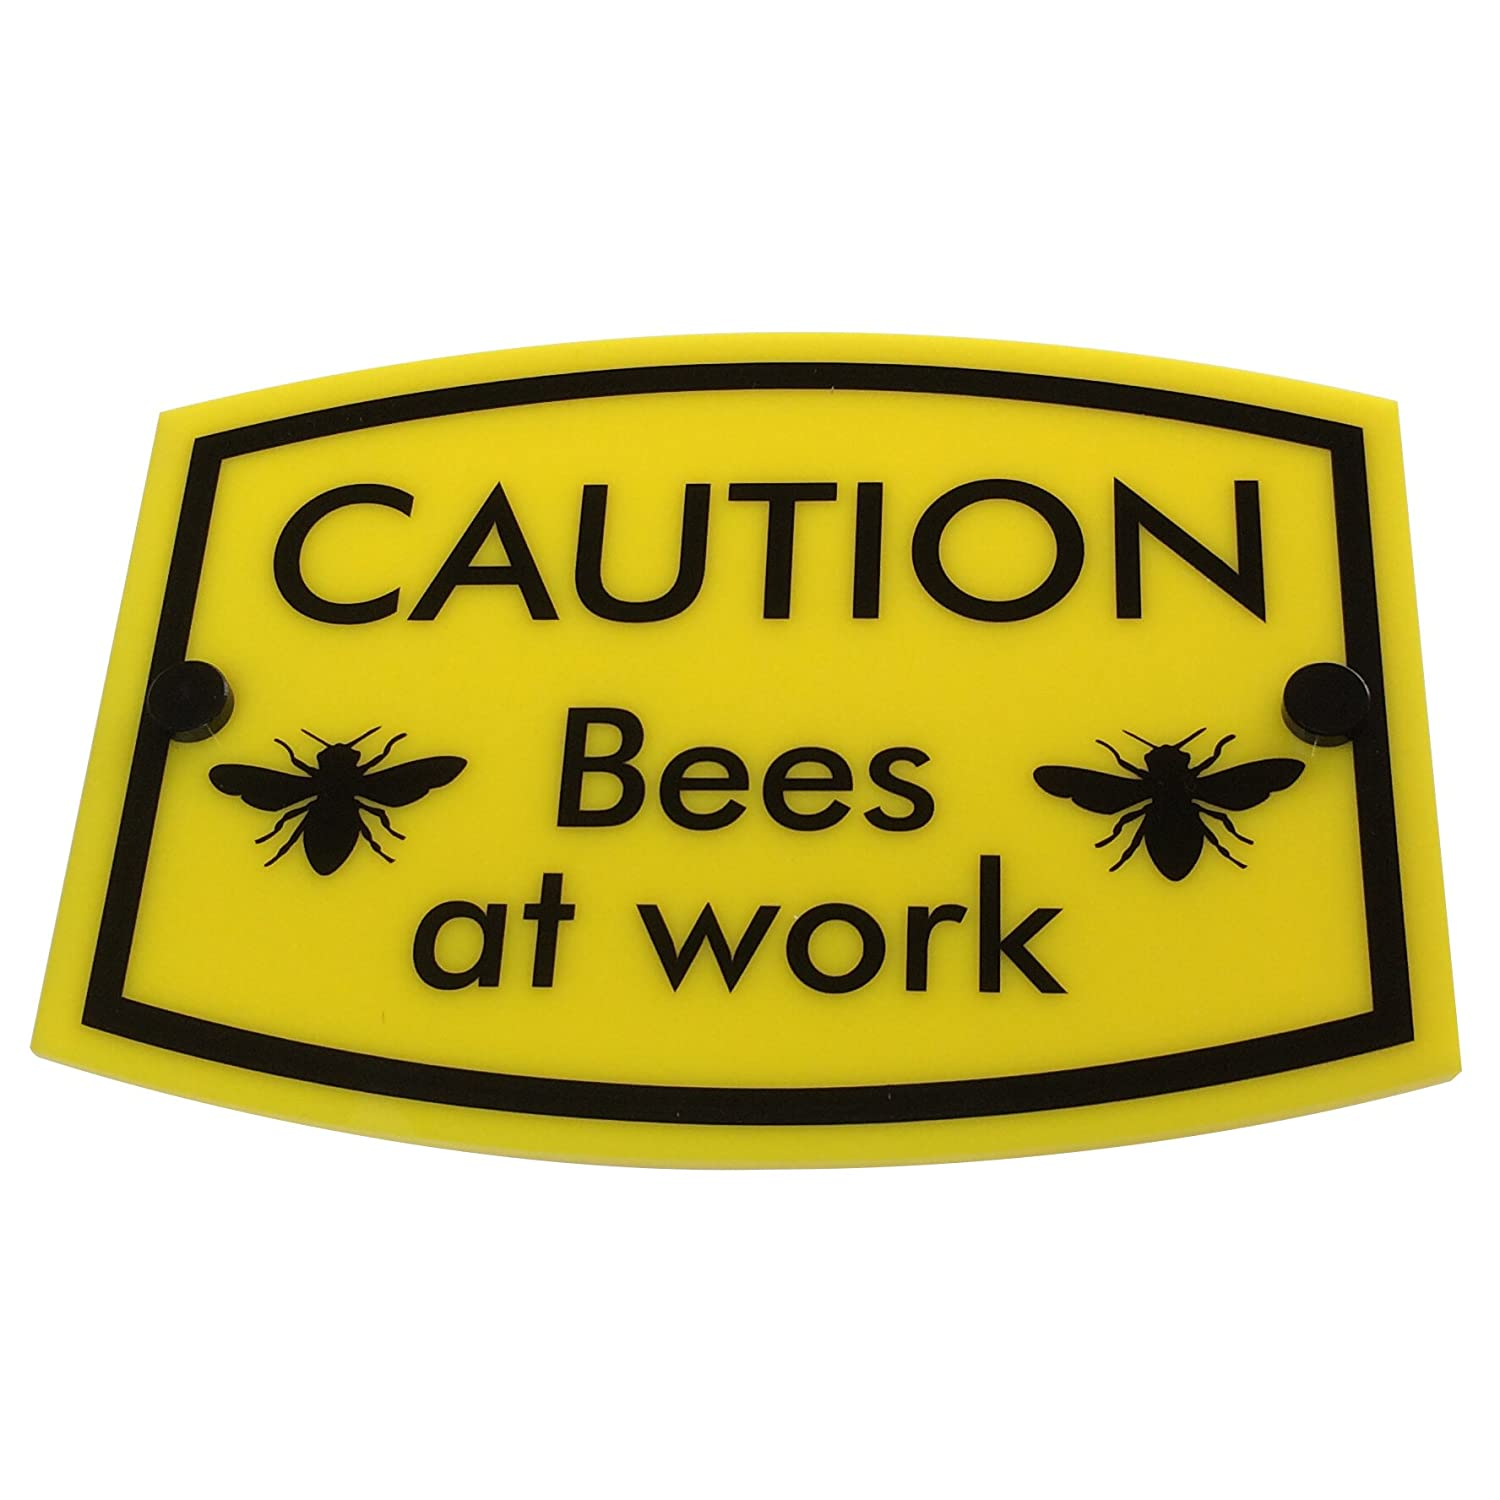 DSD Supplies ltd. Bee Keeping Warning Sign 'CAUTION Bees at work' | PREMIUM QUALITY | water-, frost-, rust- & weatherproof, UV-resistant made for long term outdoor use